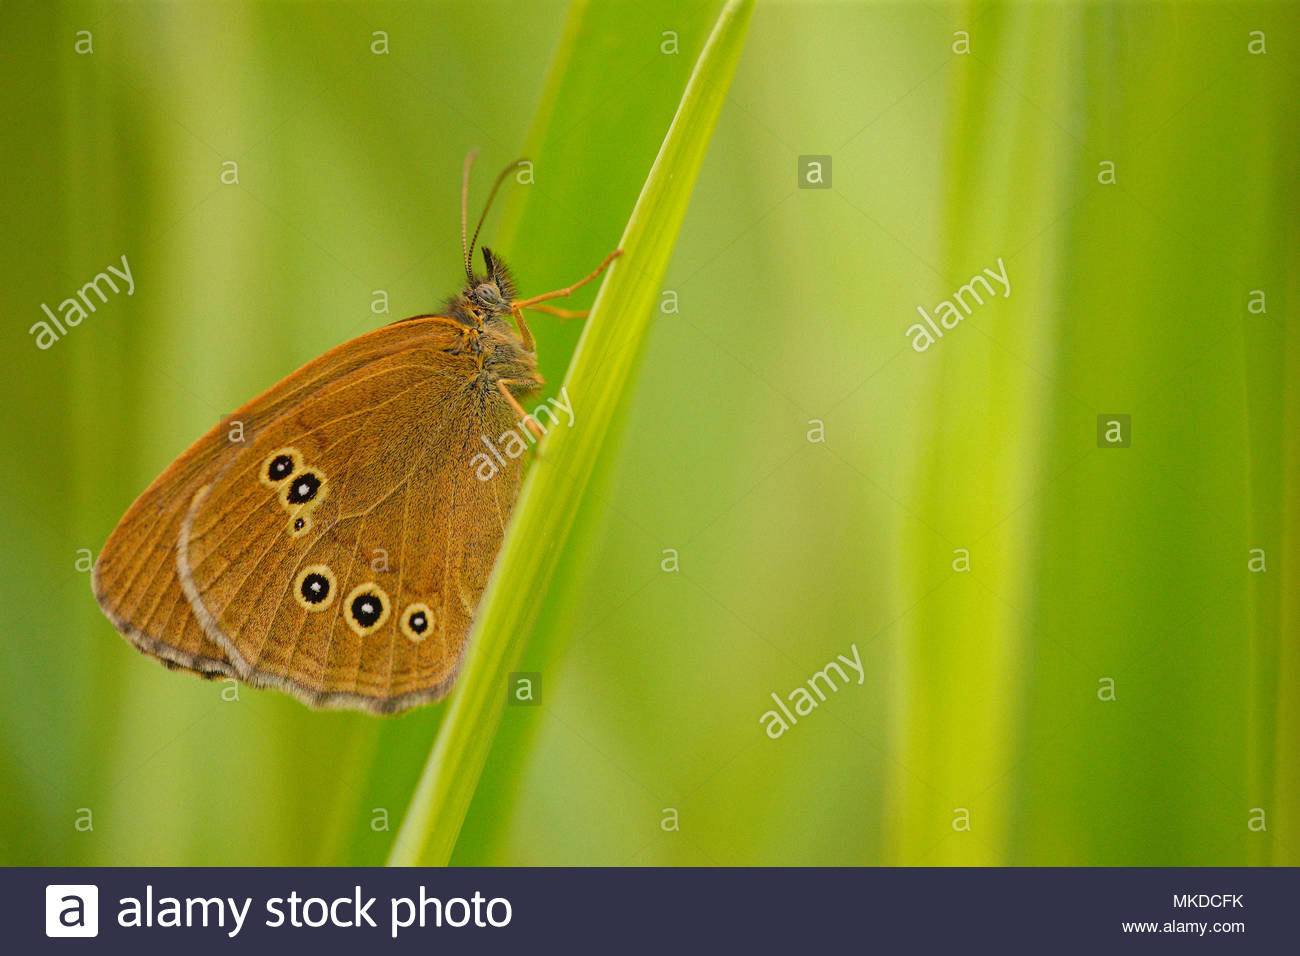 Ringlet (Aphantopus hyperantus) resting on the leaves of sedges at the edge of a stream at the edge of a wood, in summer, in June, in Picardy - France. - Stock Image